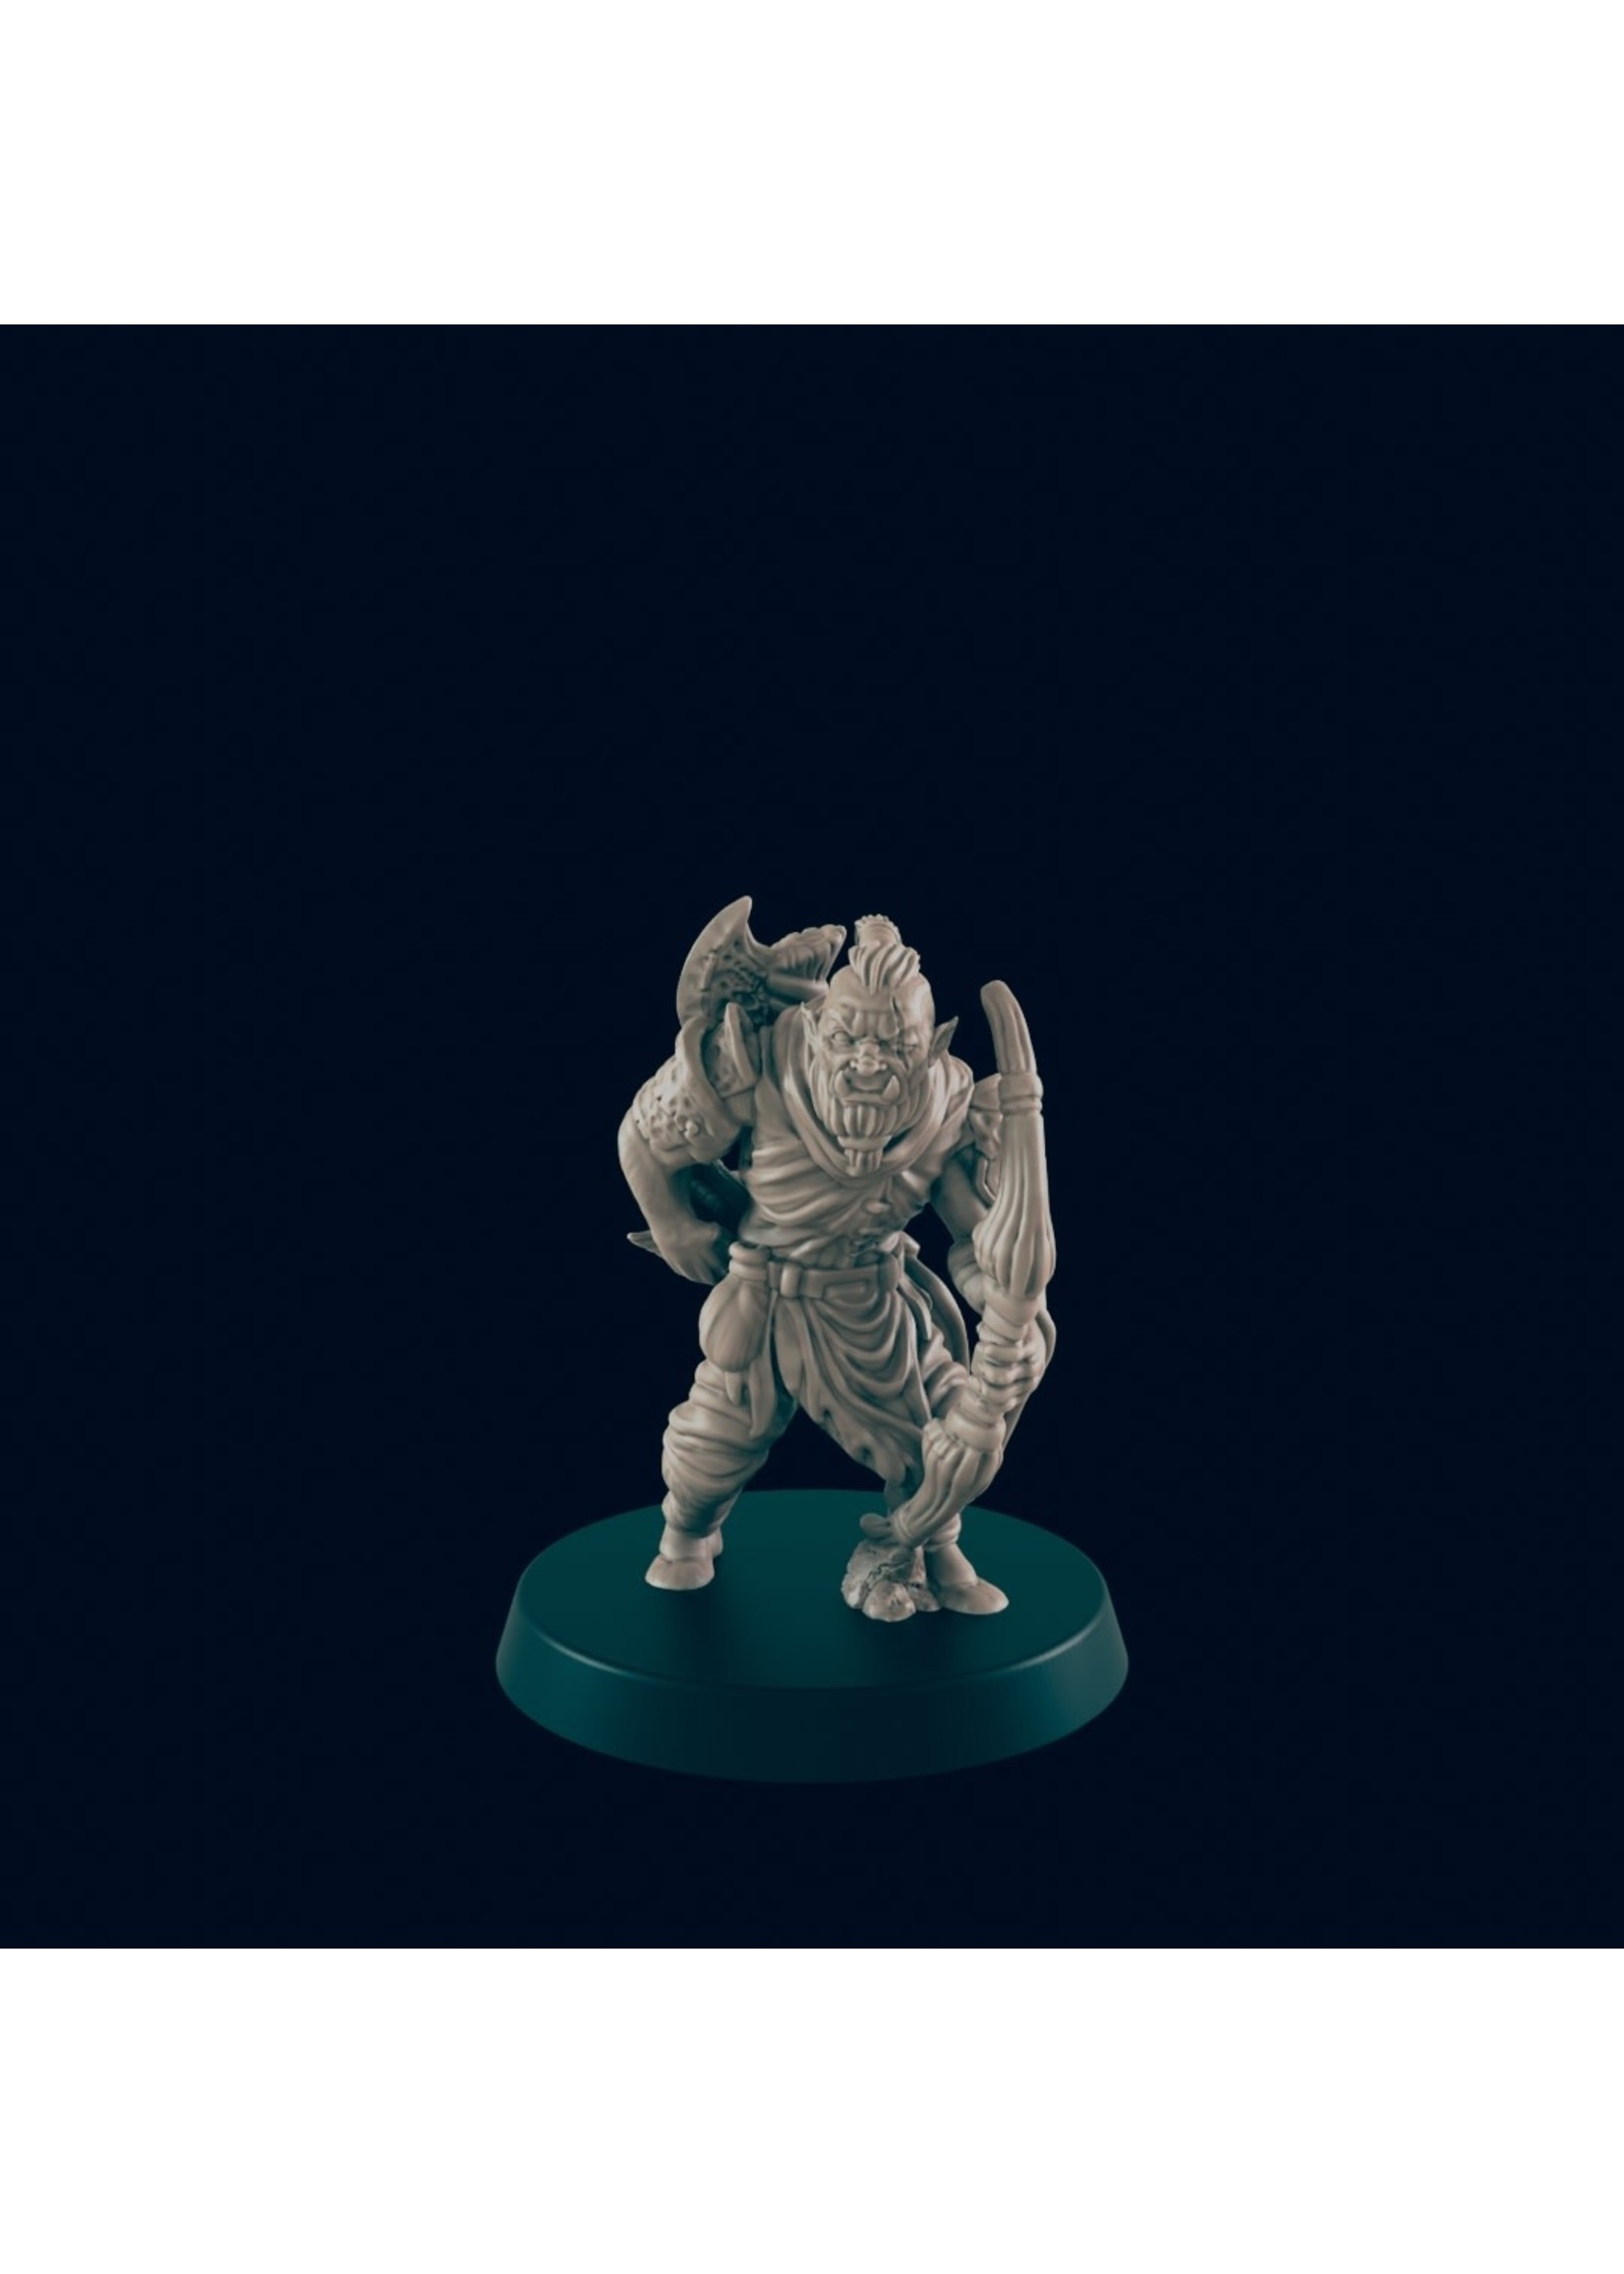 3D Printed Miniature - Orc Archer  - Dungeons & Dragons - Beasts and Baddies